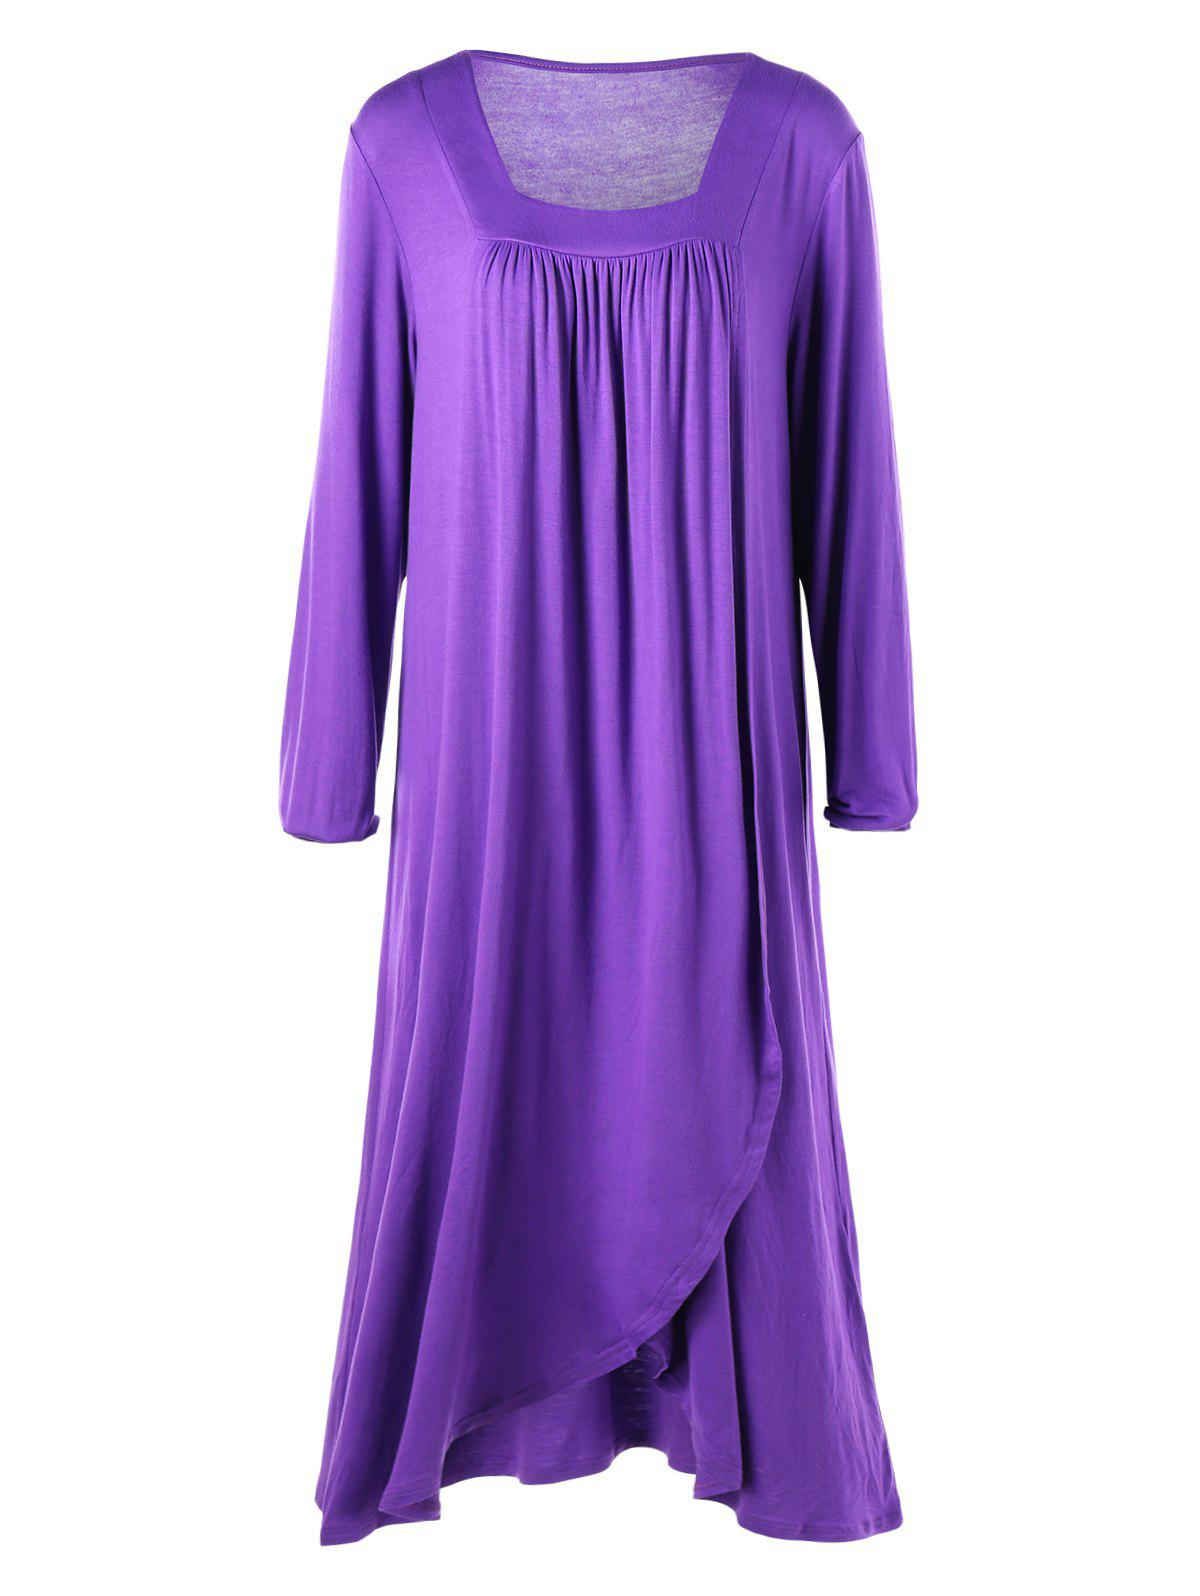 Plus Size Asymmetrical Midi T-shirt Dress - PURPLE 2XL